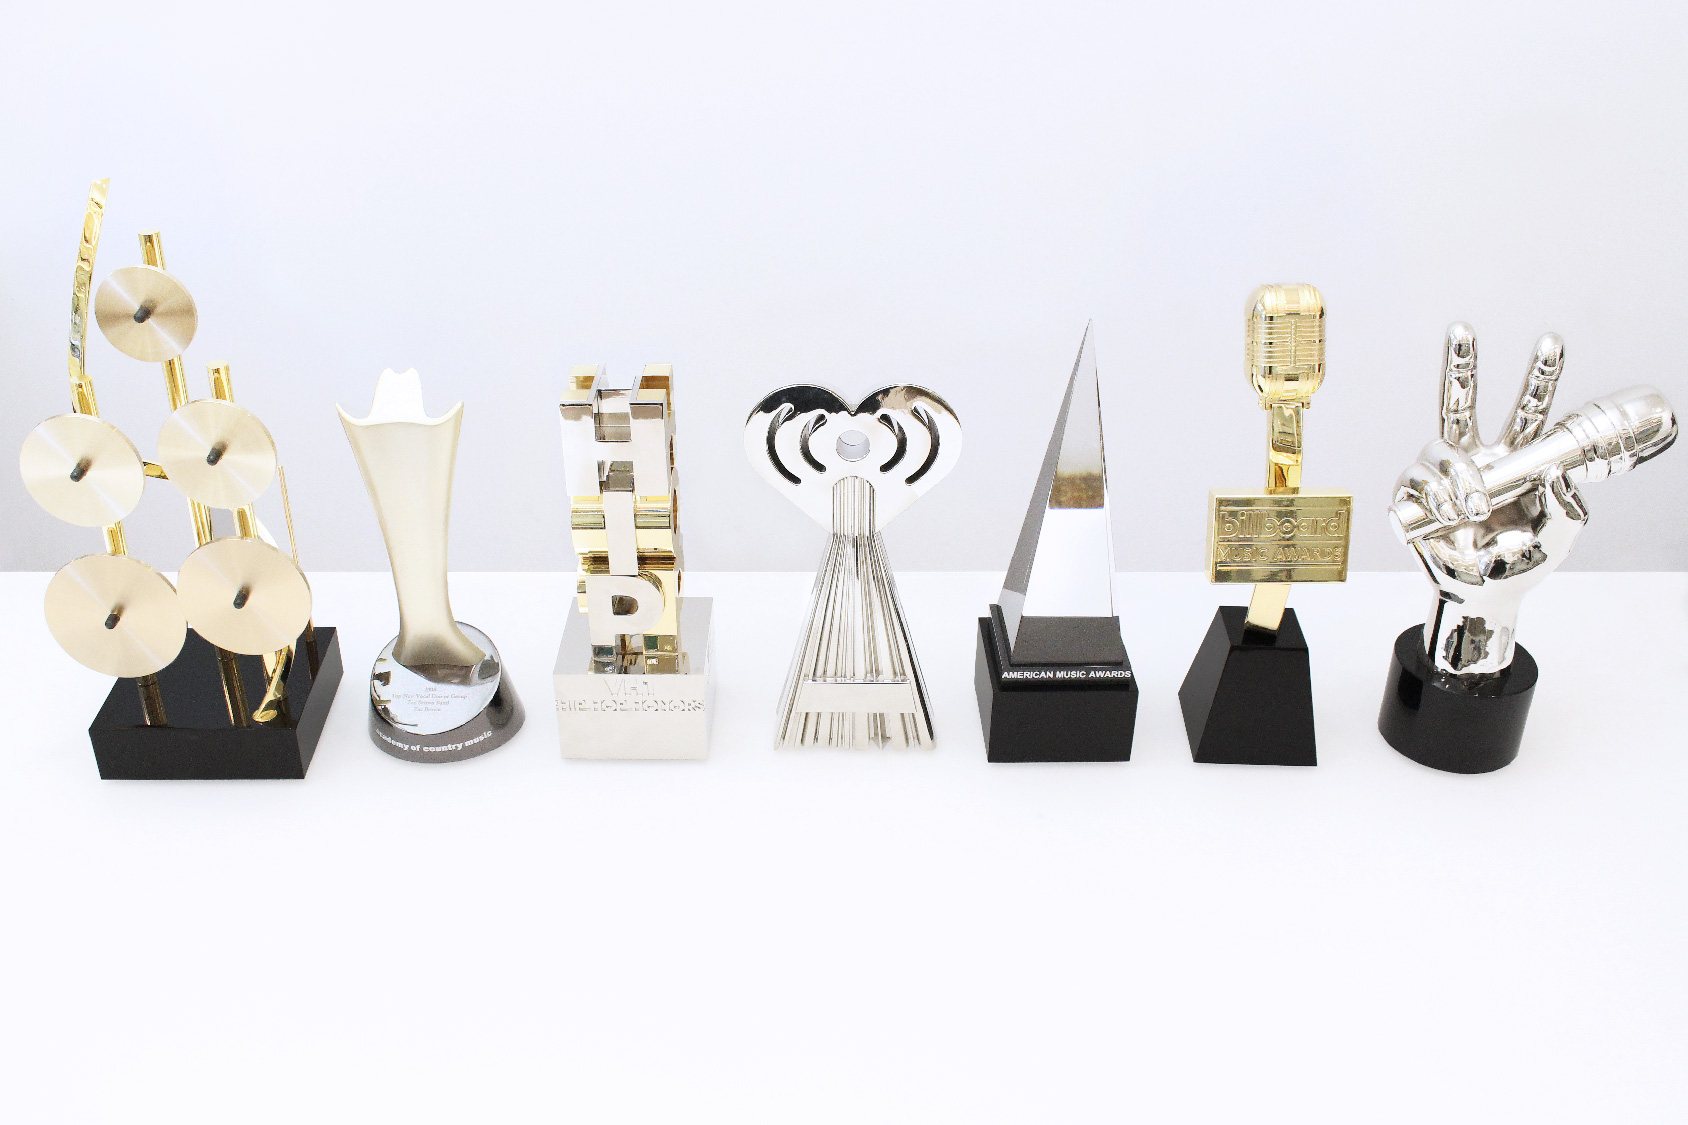 Front view of seven famous custom music awards program trophies, all crafted by Society Awards